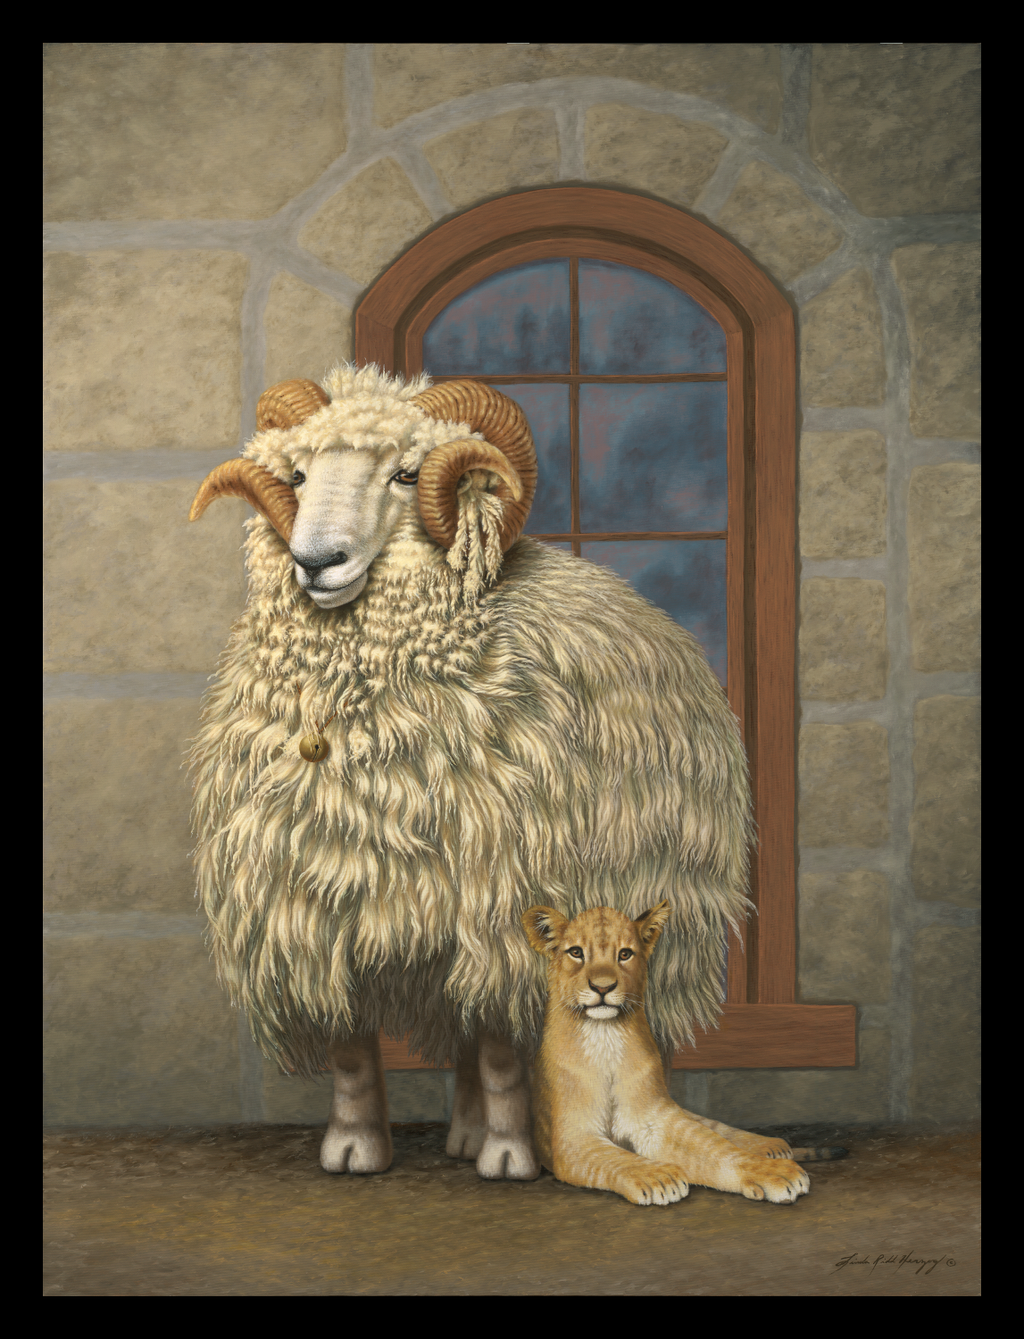 The Sheep And The Cub by LindaRHerzog